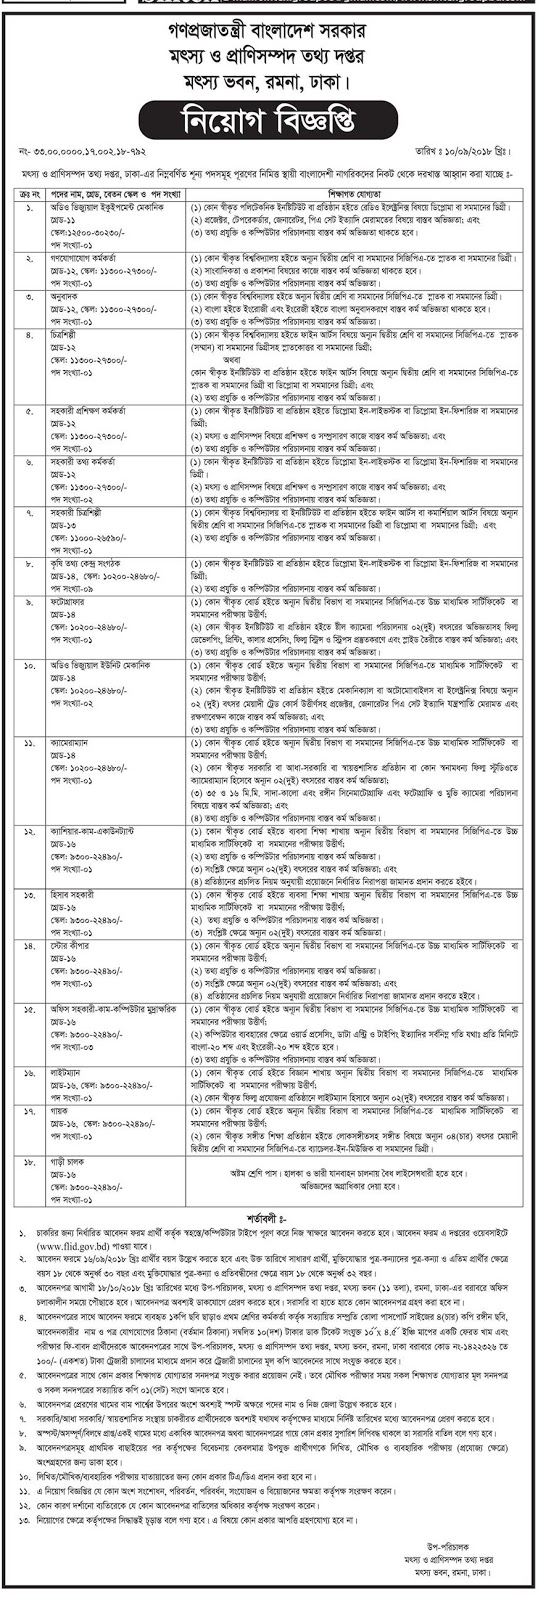 Department of Fisheries and Livestock Information Recruitment Circular 2018